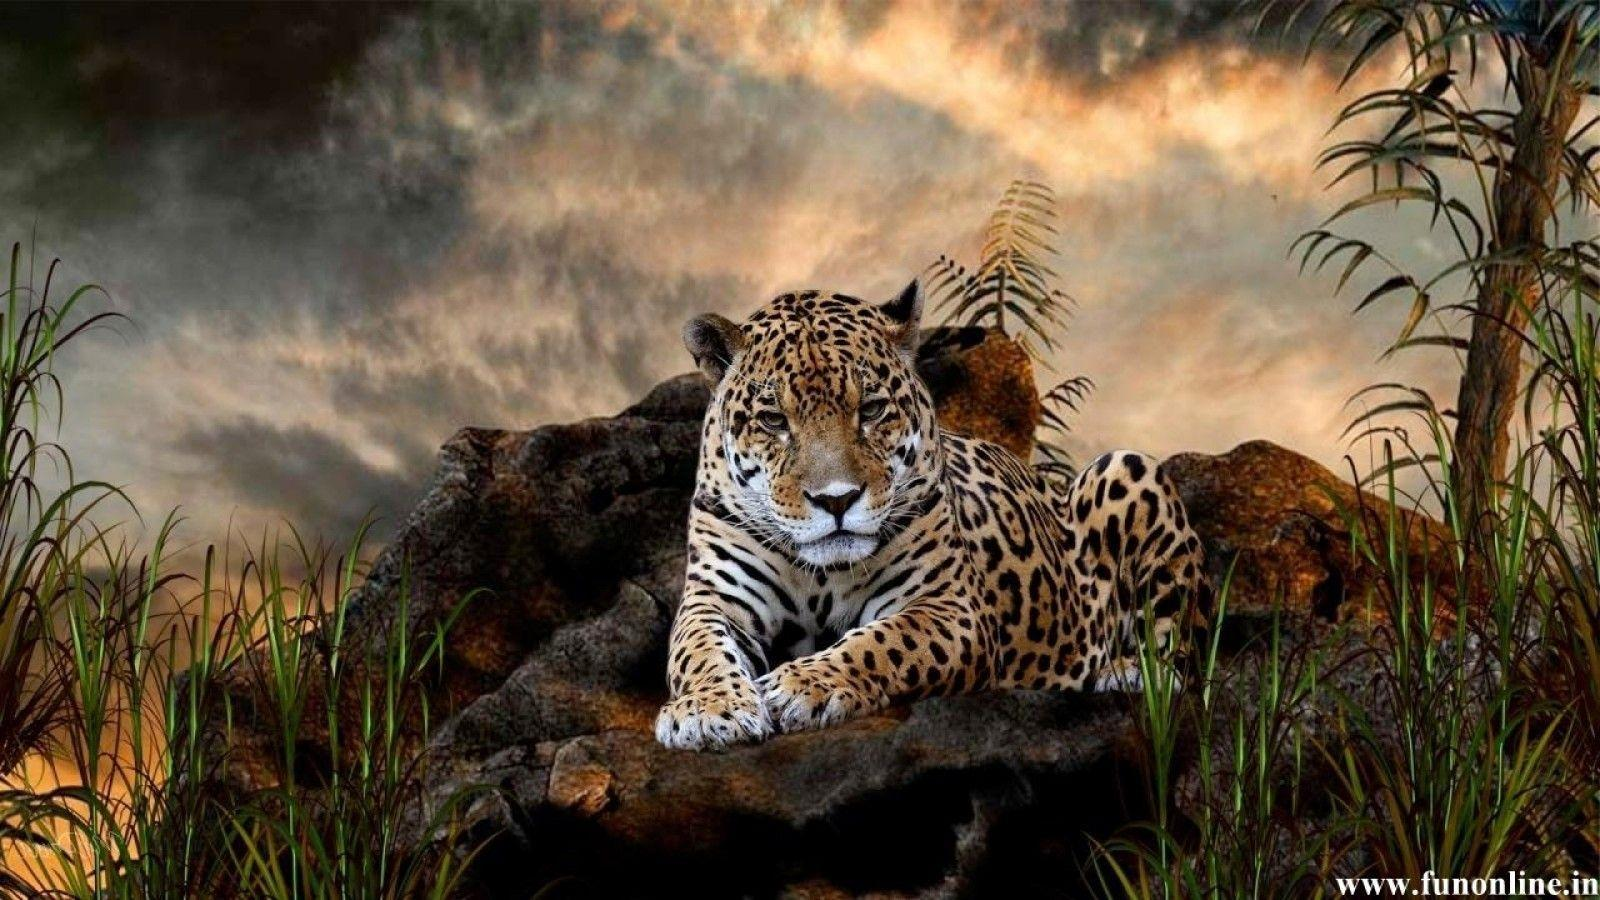 Jaguar wallpapers wallpaper cave for Fond ecran noel gratuit pour ordinateur